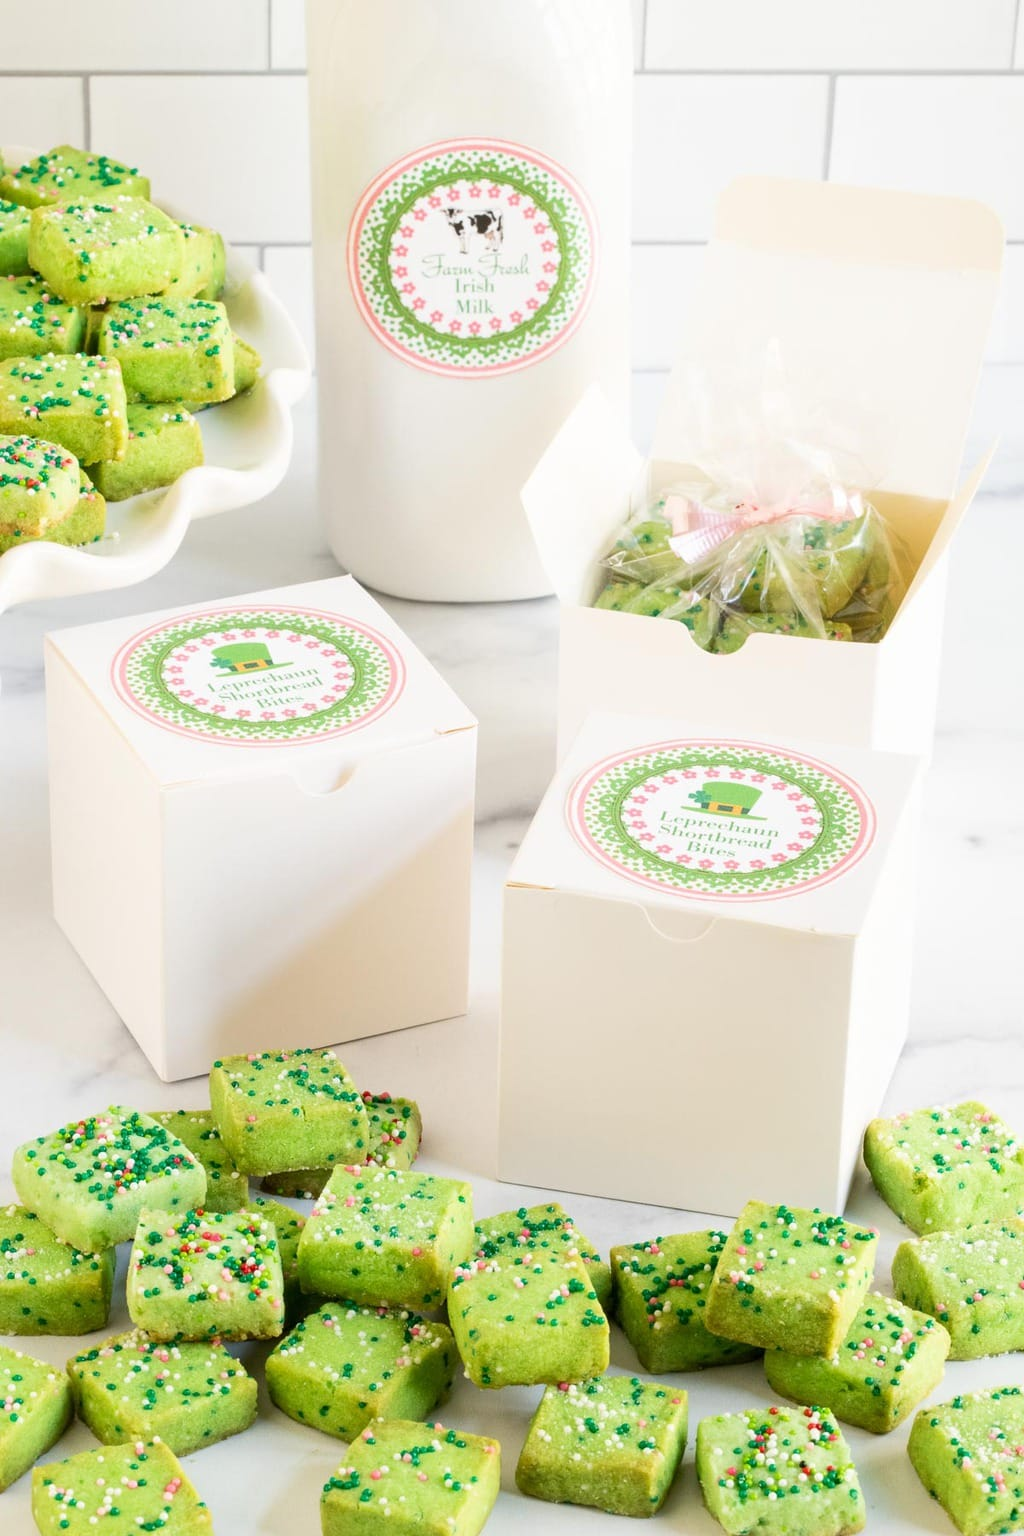 Vertical photo of Leprechaun Shortbread Bites packaged in gift boxes with a custom St. Patrick's Day label on the boxes.